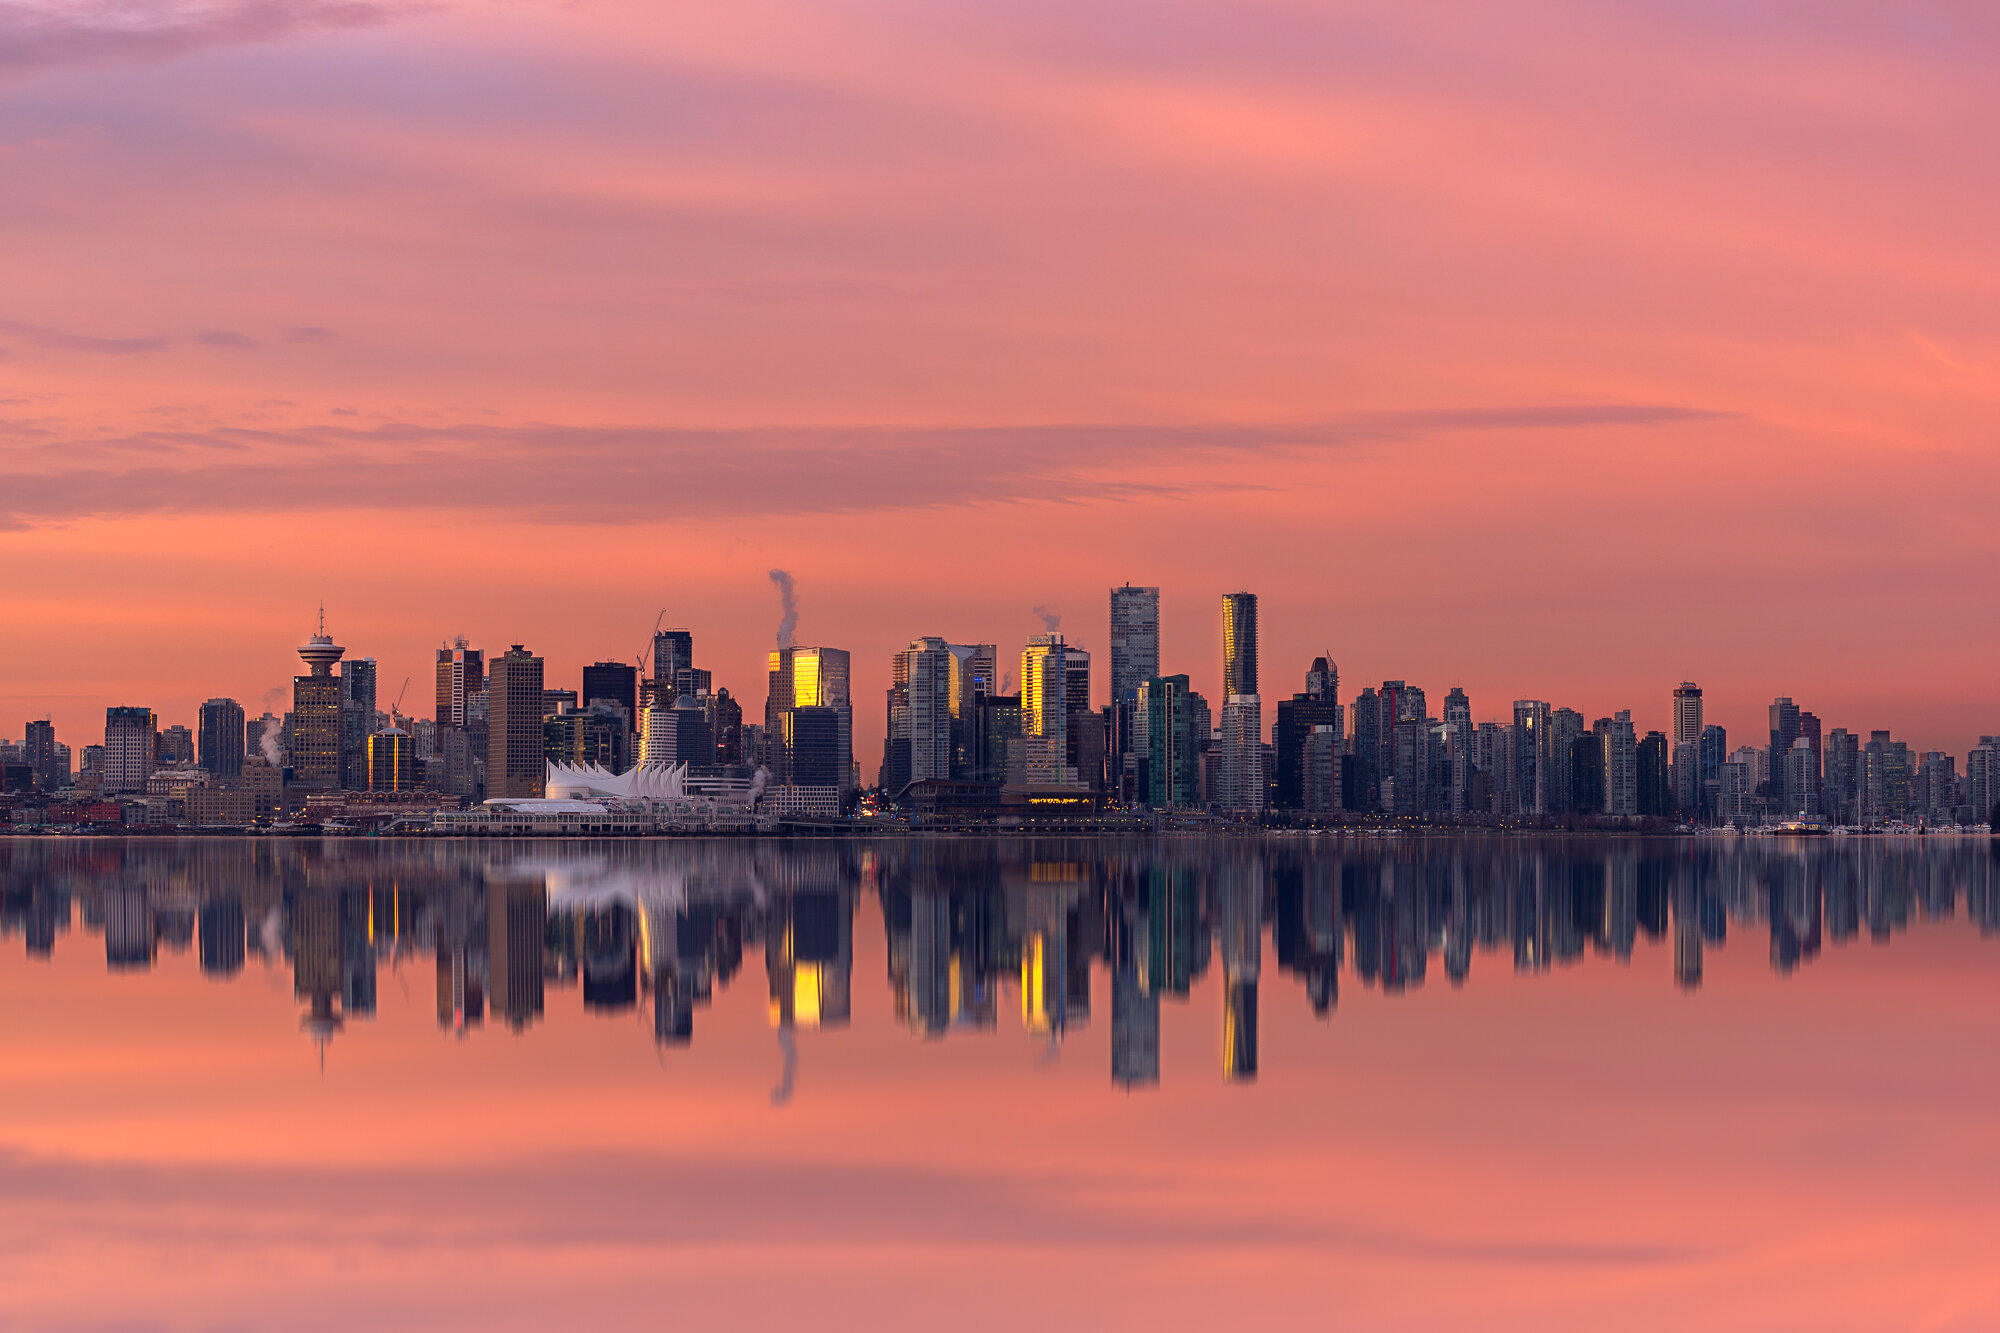 Vancouver City Photography: 'Mirrored Reflections'